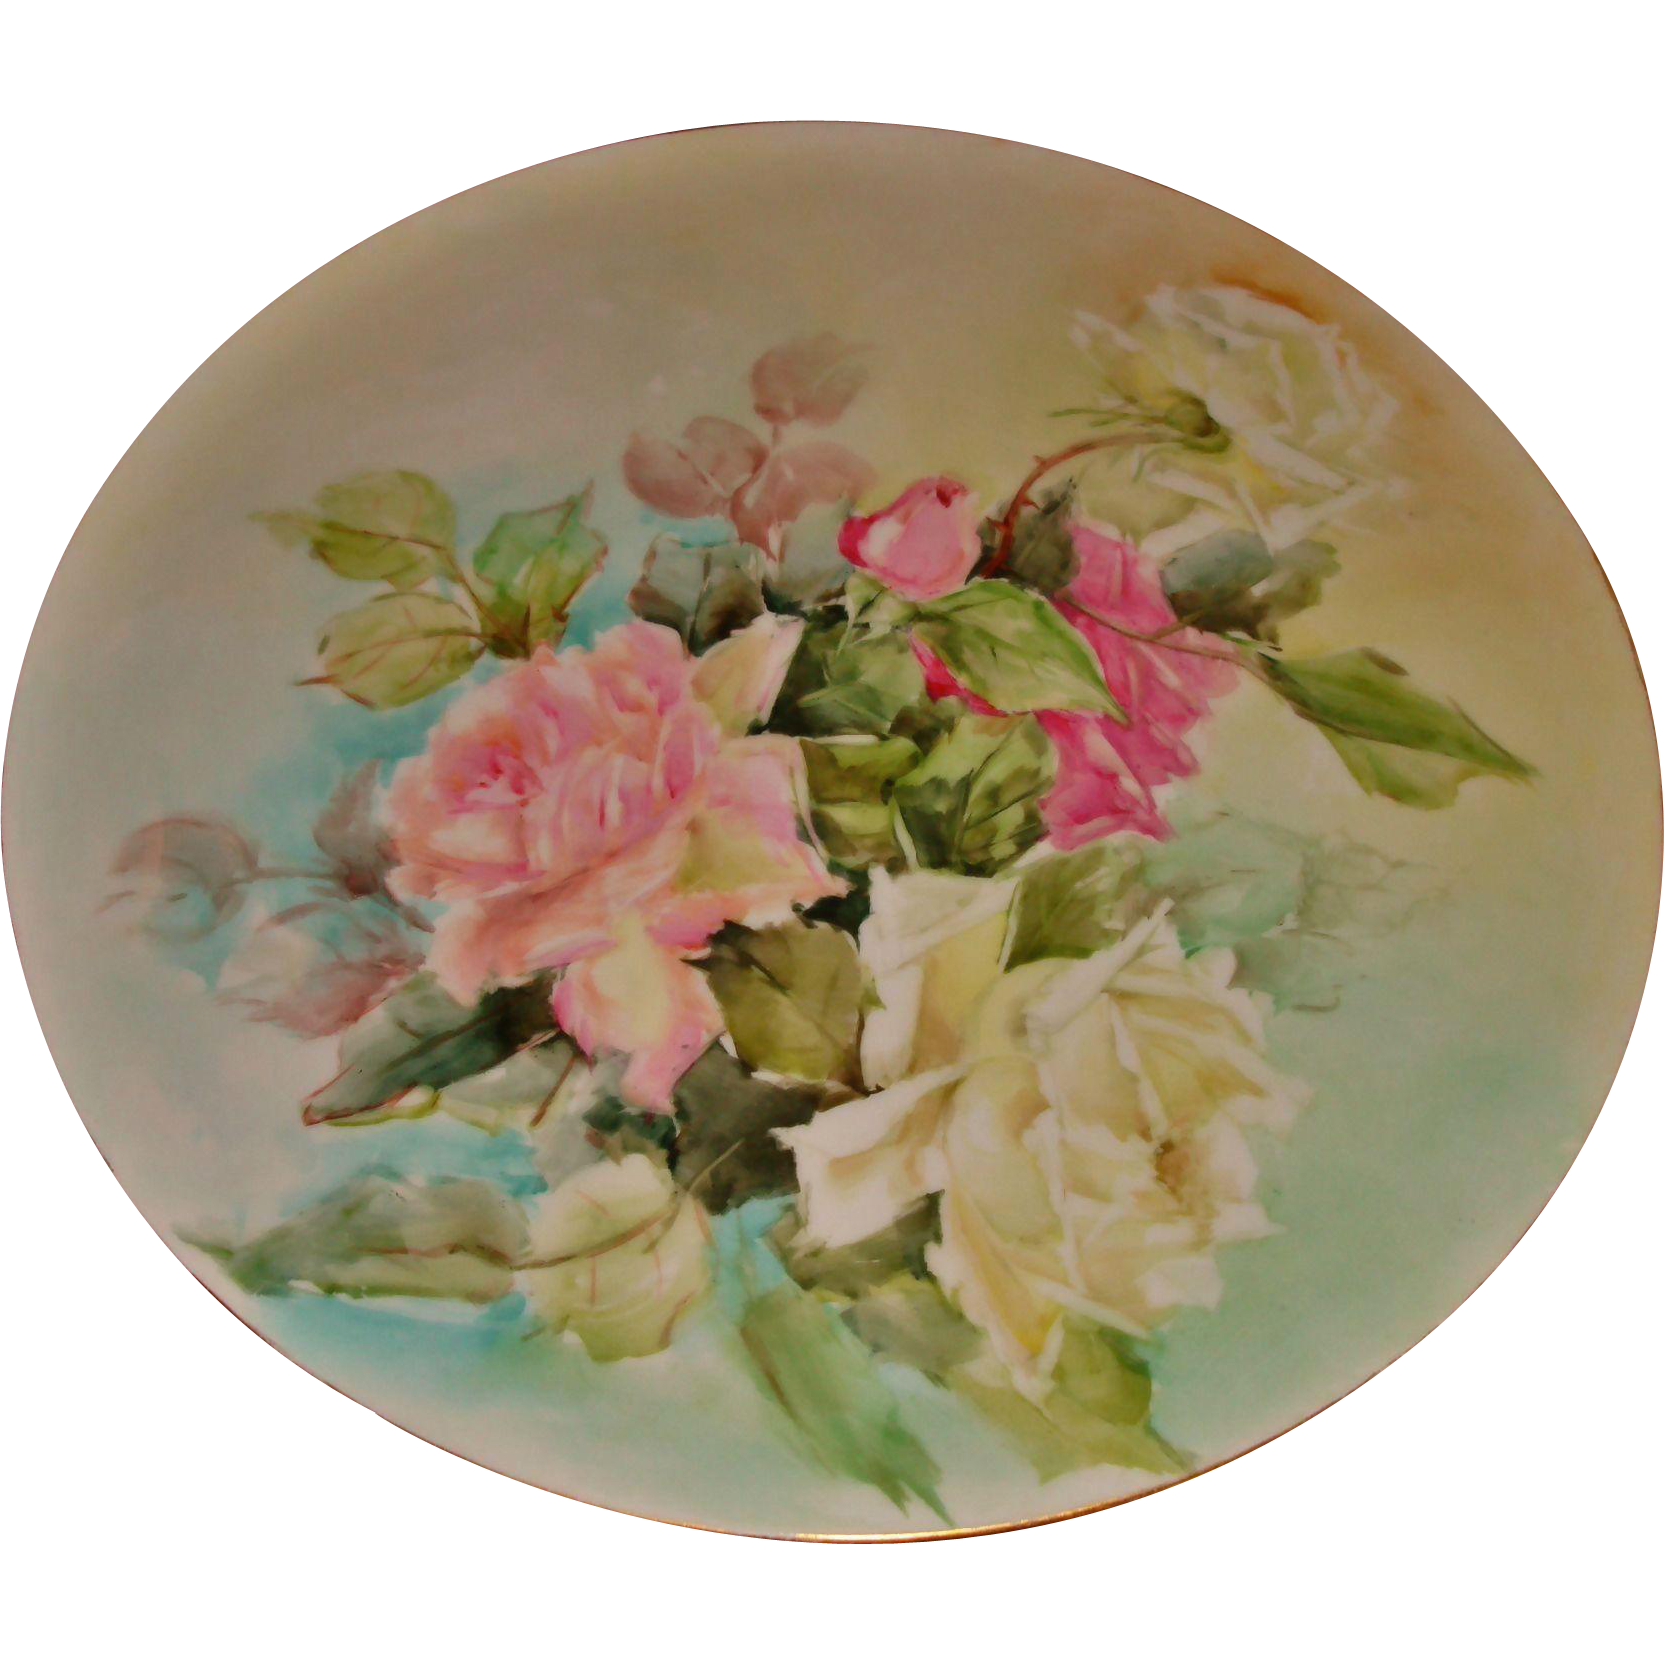 Beautiful Antique Limoges France Hand Painted Porcelain French Tray for Punch Bowl Jardiniere Vase spectacular Roses